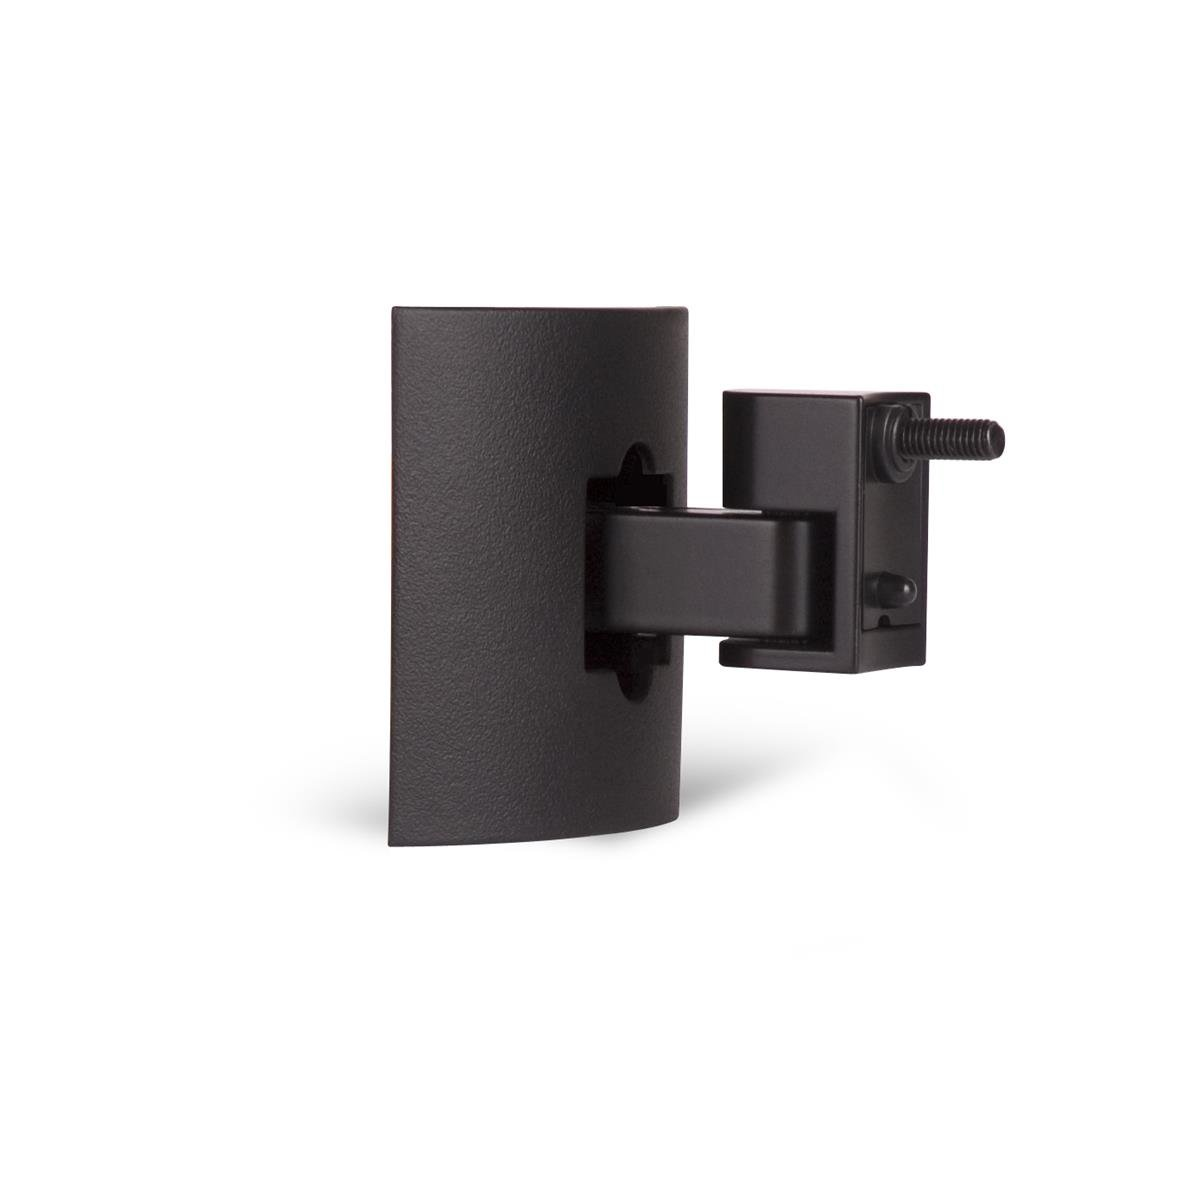 Bose Lifestyle 600 Home Entertainment System with UB-20 Series II Wall/Ceiling Bracket (Black) by Bose